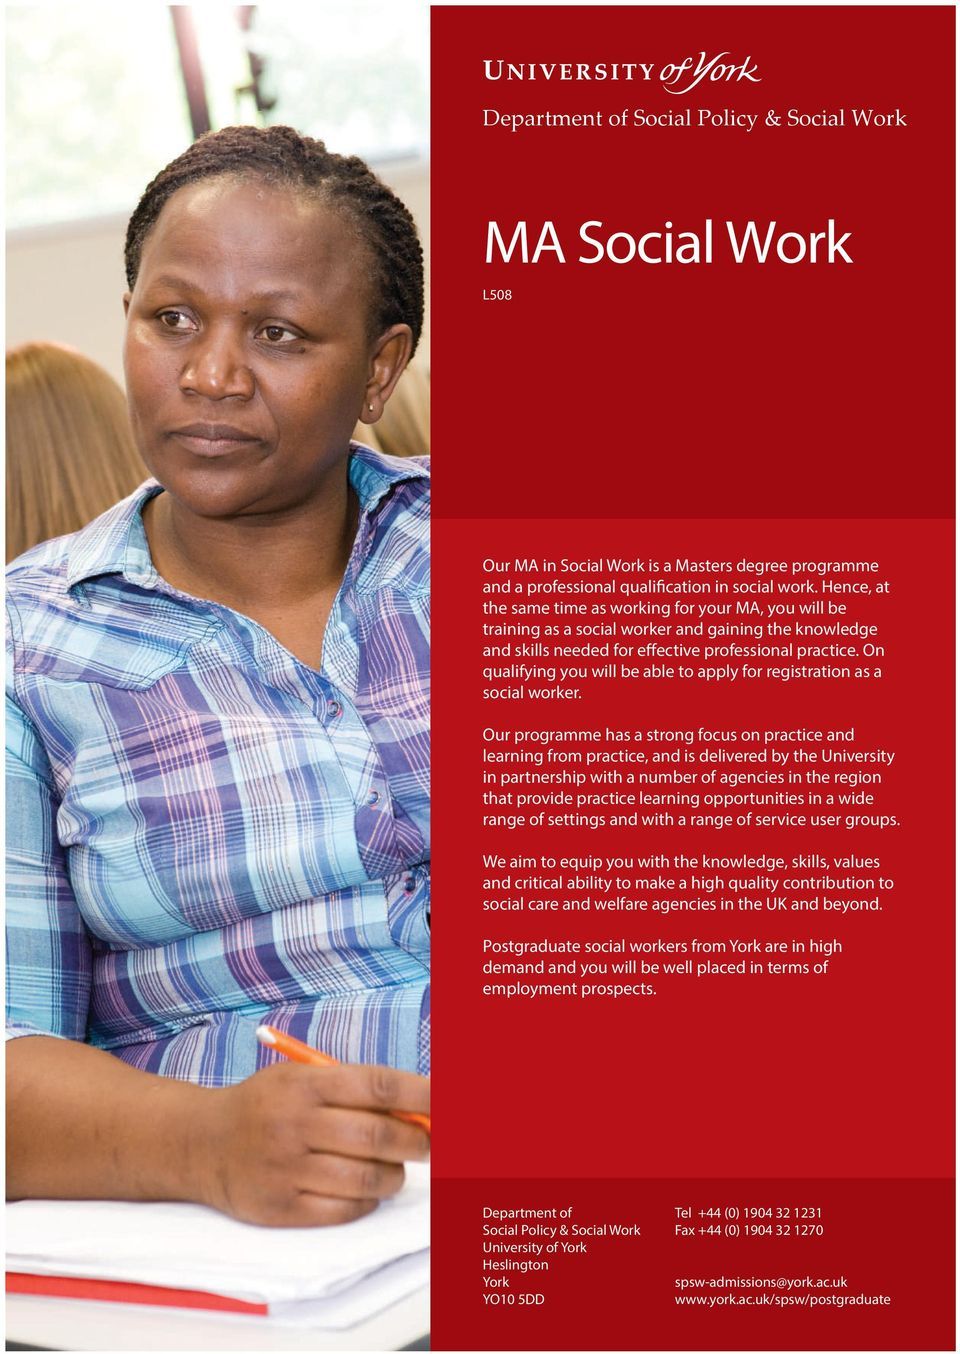 On qualifying you will be able to apply for registration as a social worker.